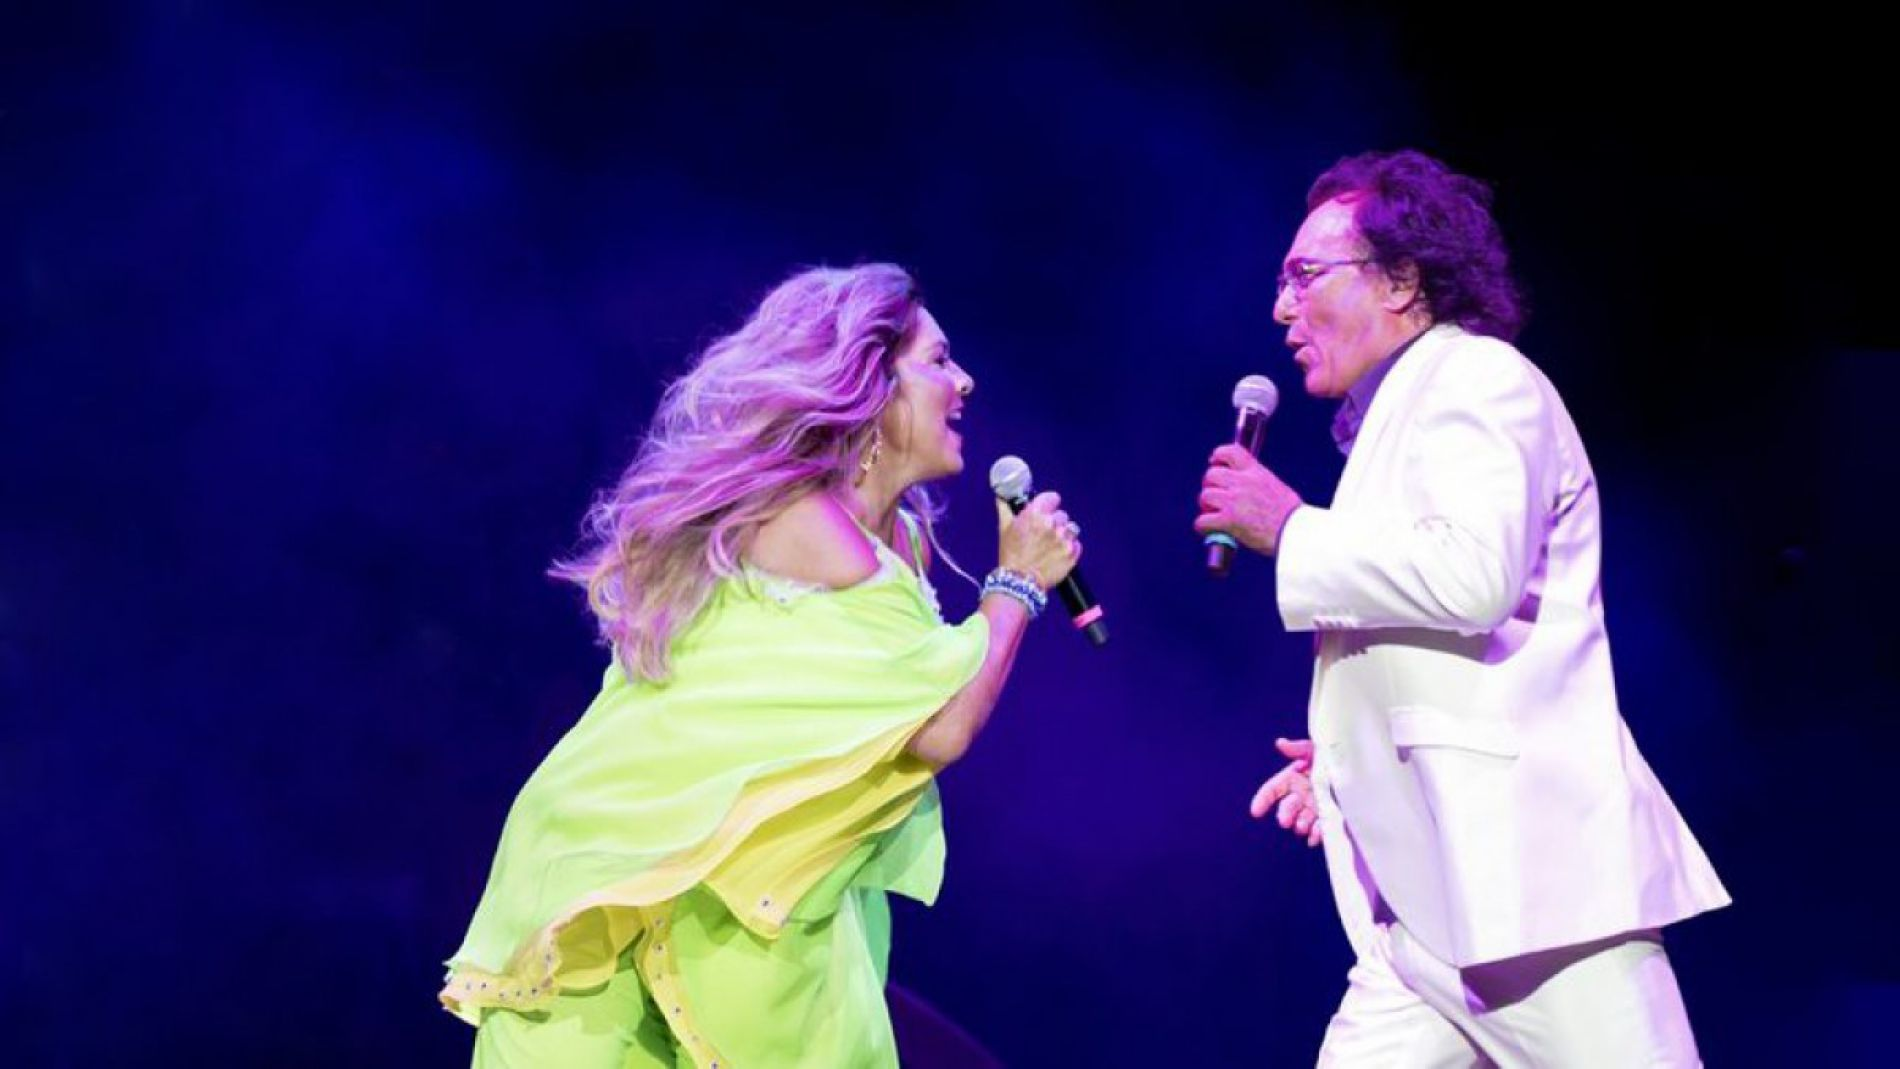 Al Bano and Romina Power give a concert in Sofia in December